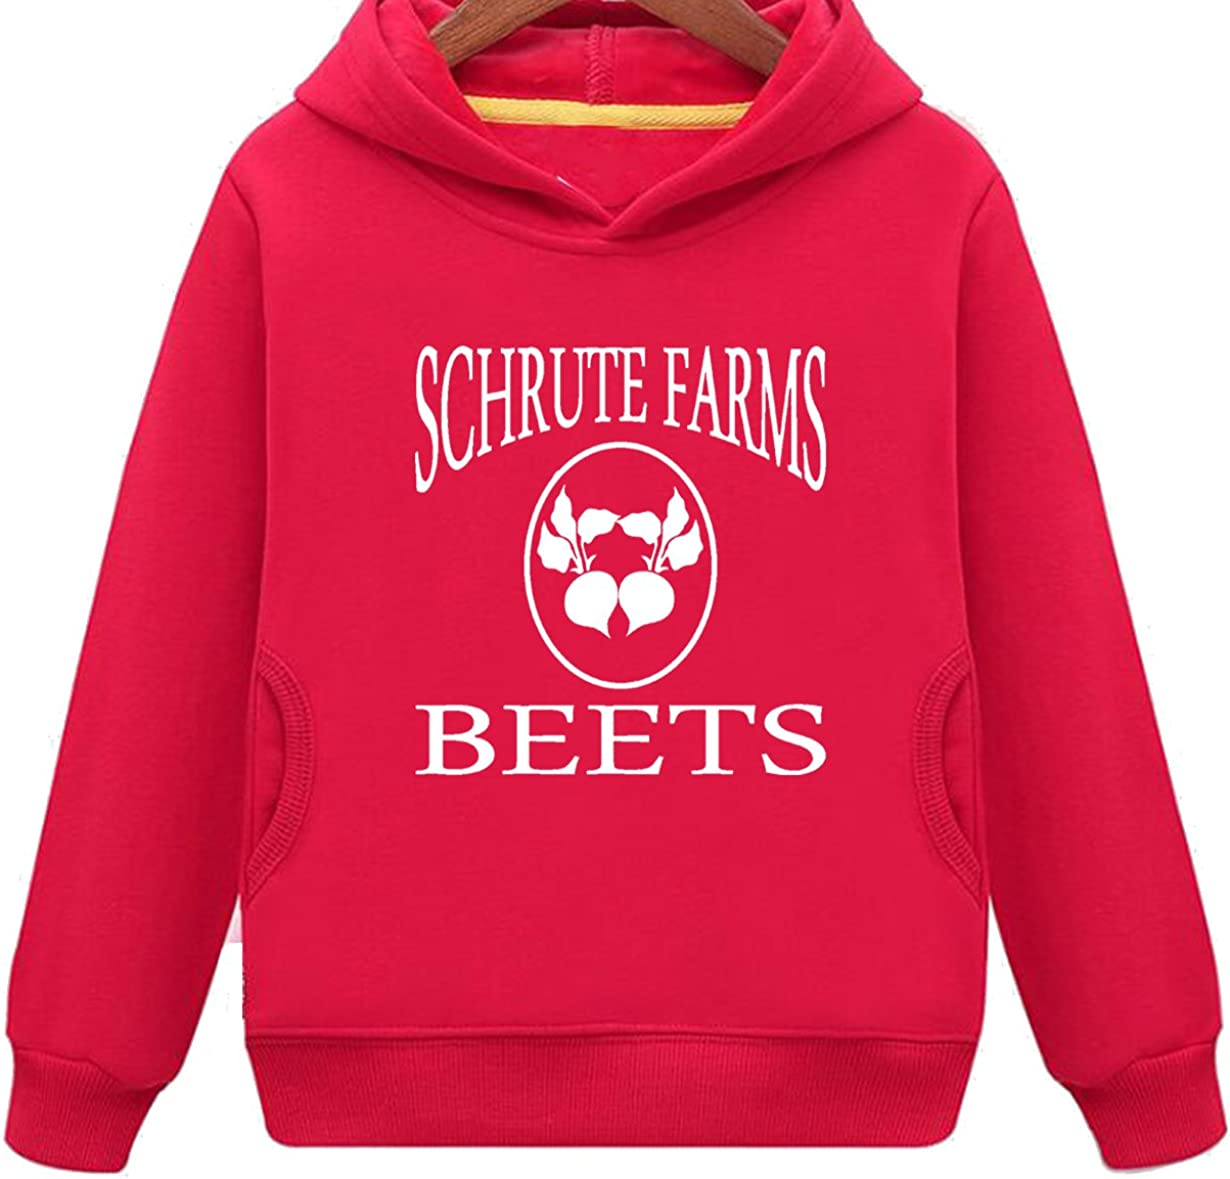 Buffaloo Kids Two Pockets Schrute Farms Beets Funny Hoodie